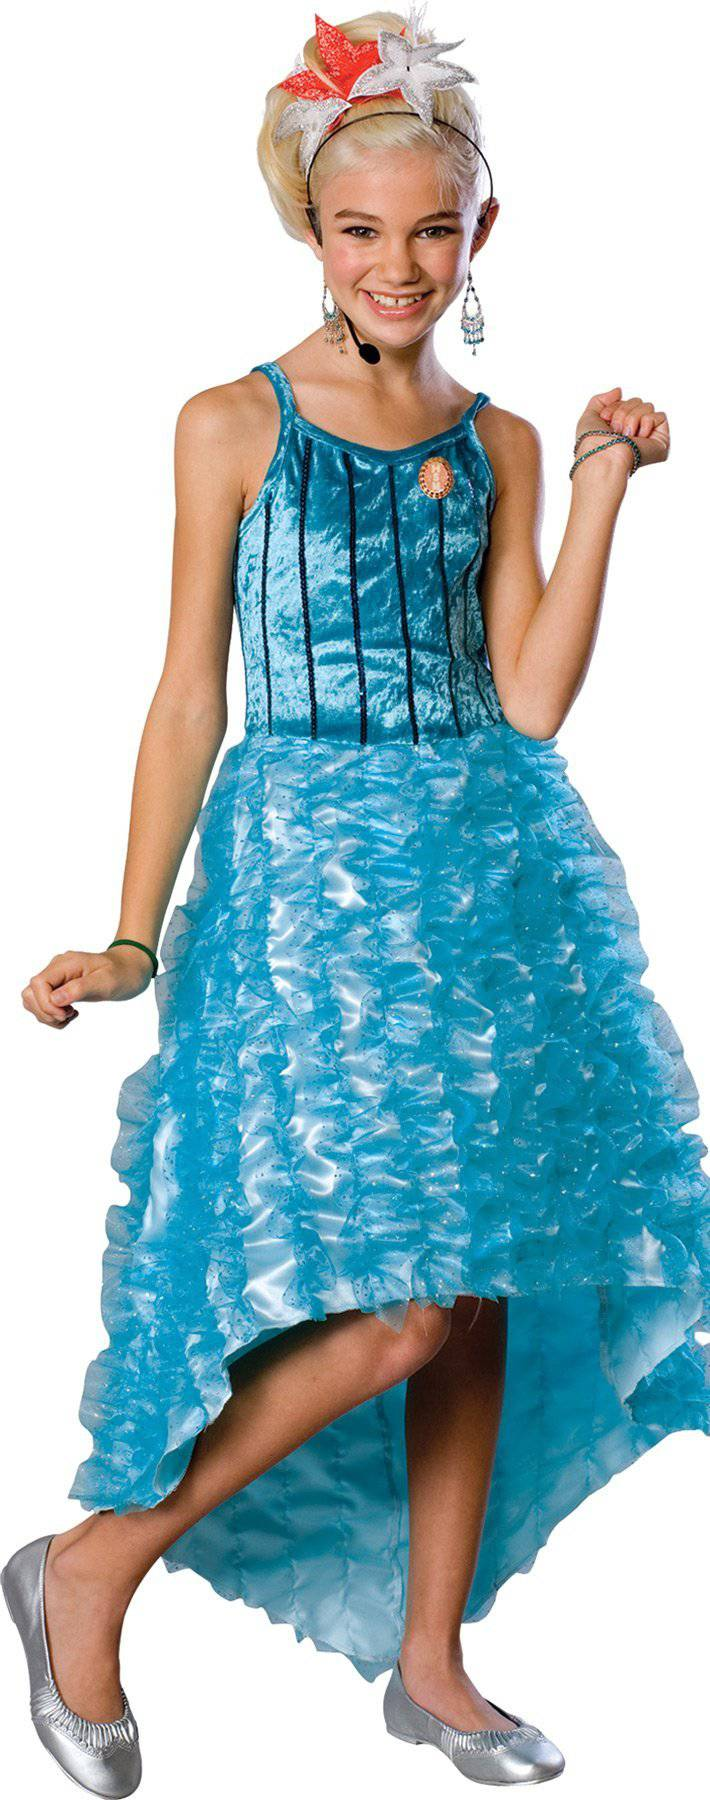 Rubie's Girls' Sharpay Deluxe Fancy Dress Costume - Costume Arena